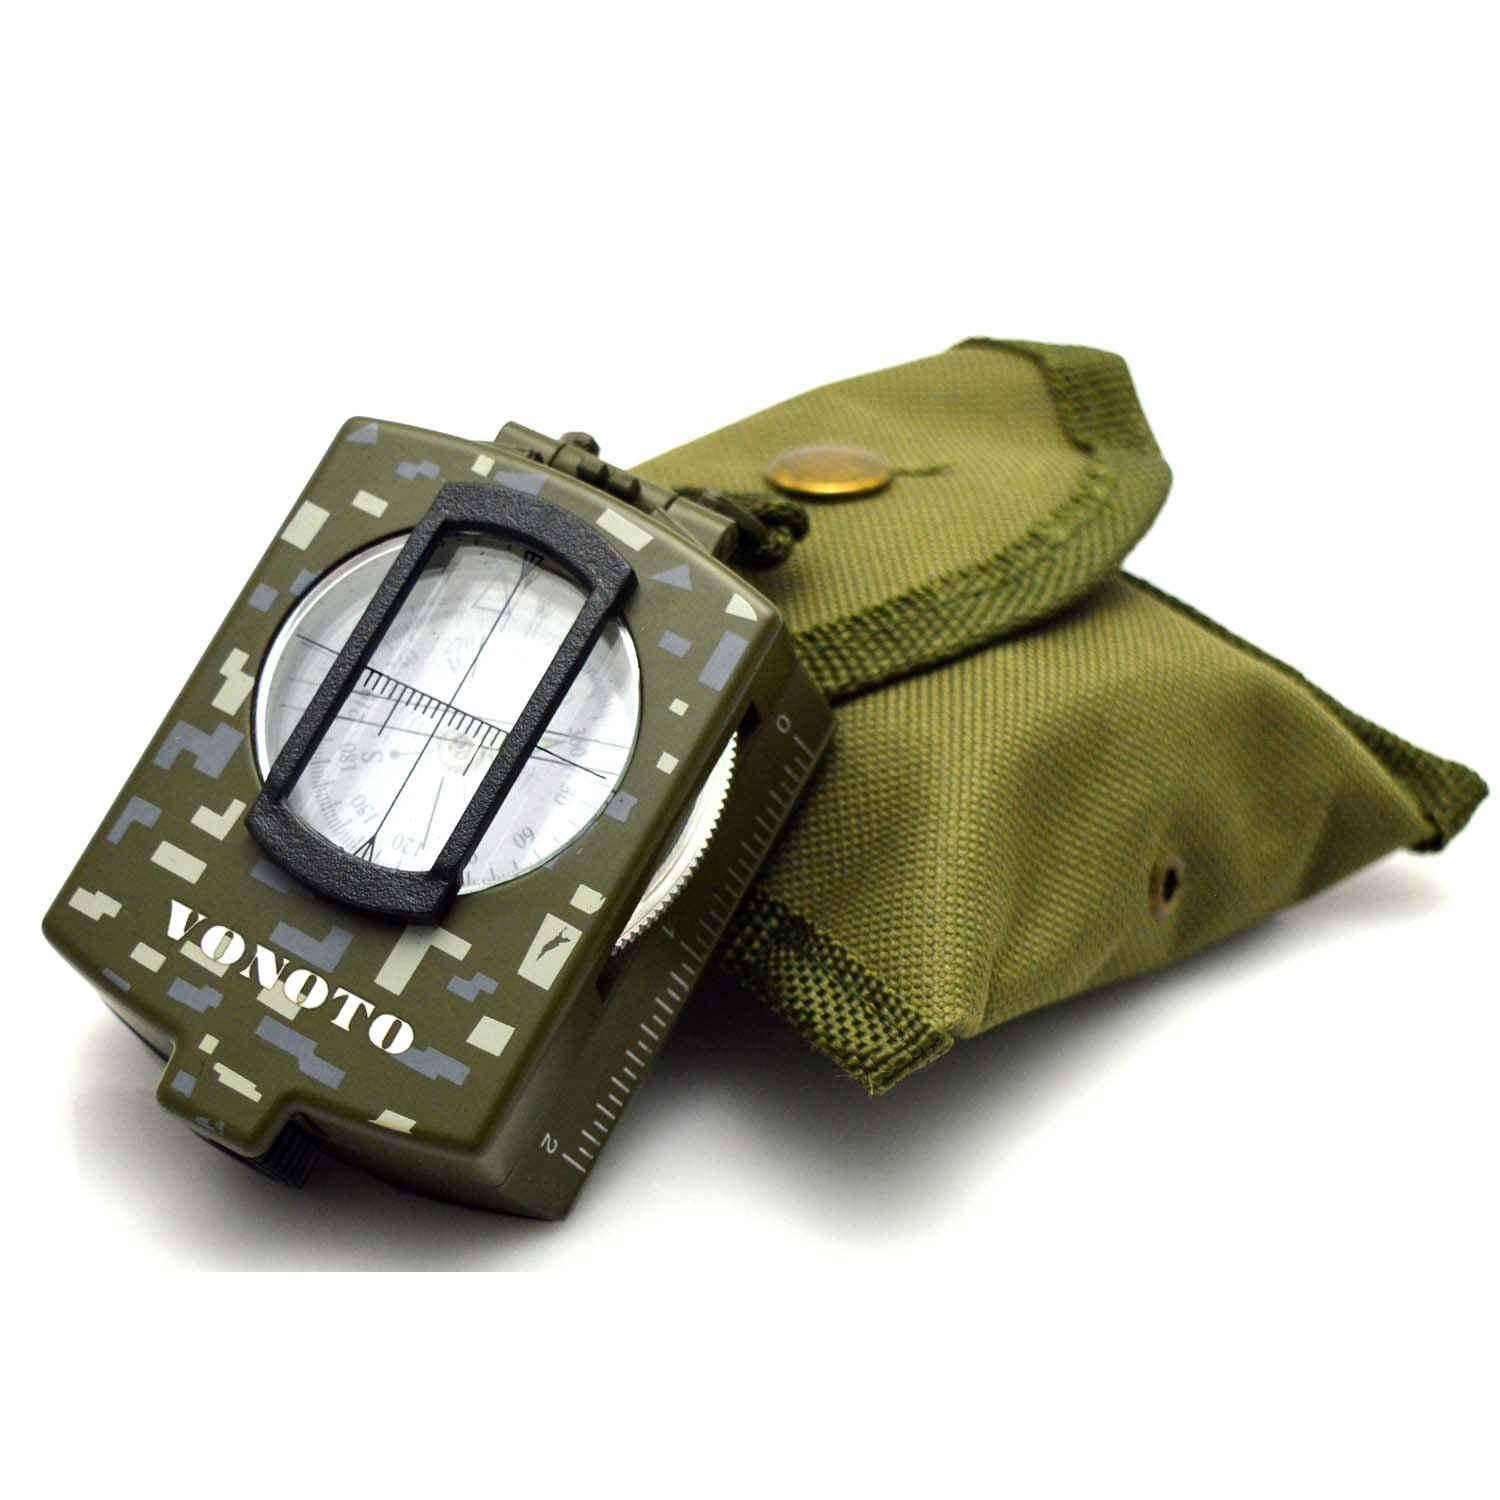 COSTIN Multifunctional Compass All Metal Military Waterproof High Accuracy Compass with Sighting Clinometer for Outdoor Activities Matte Black